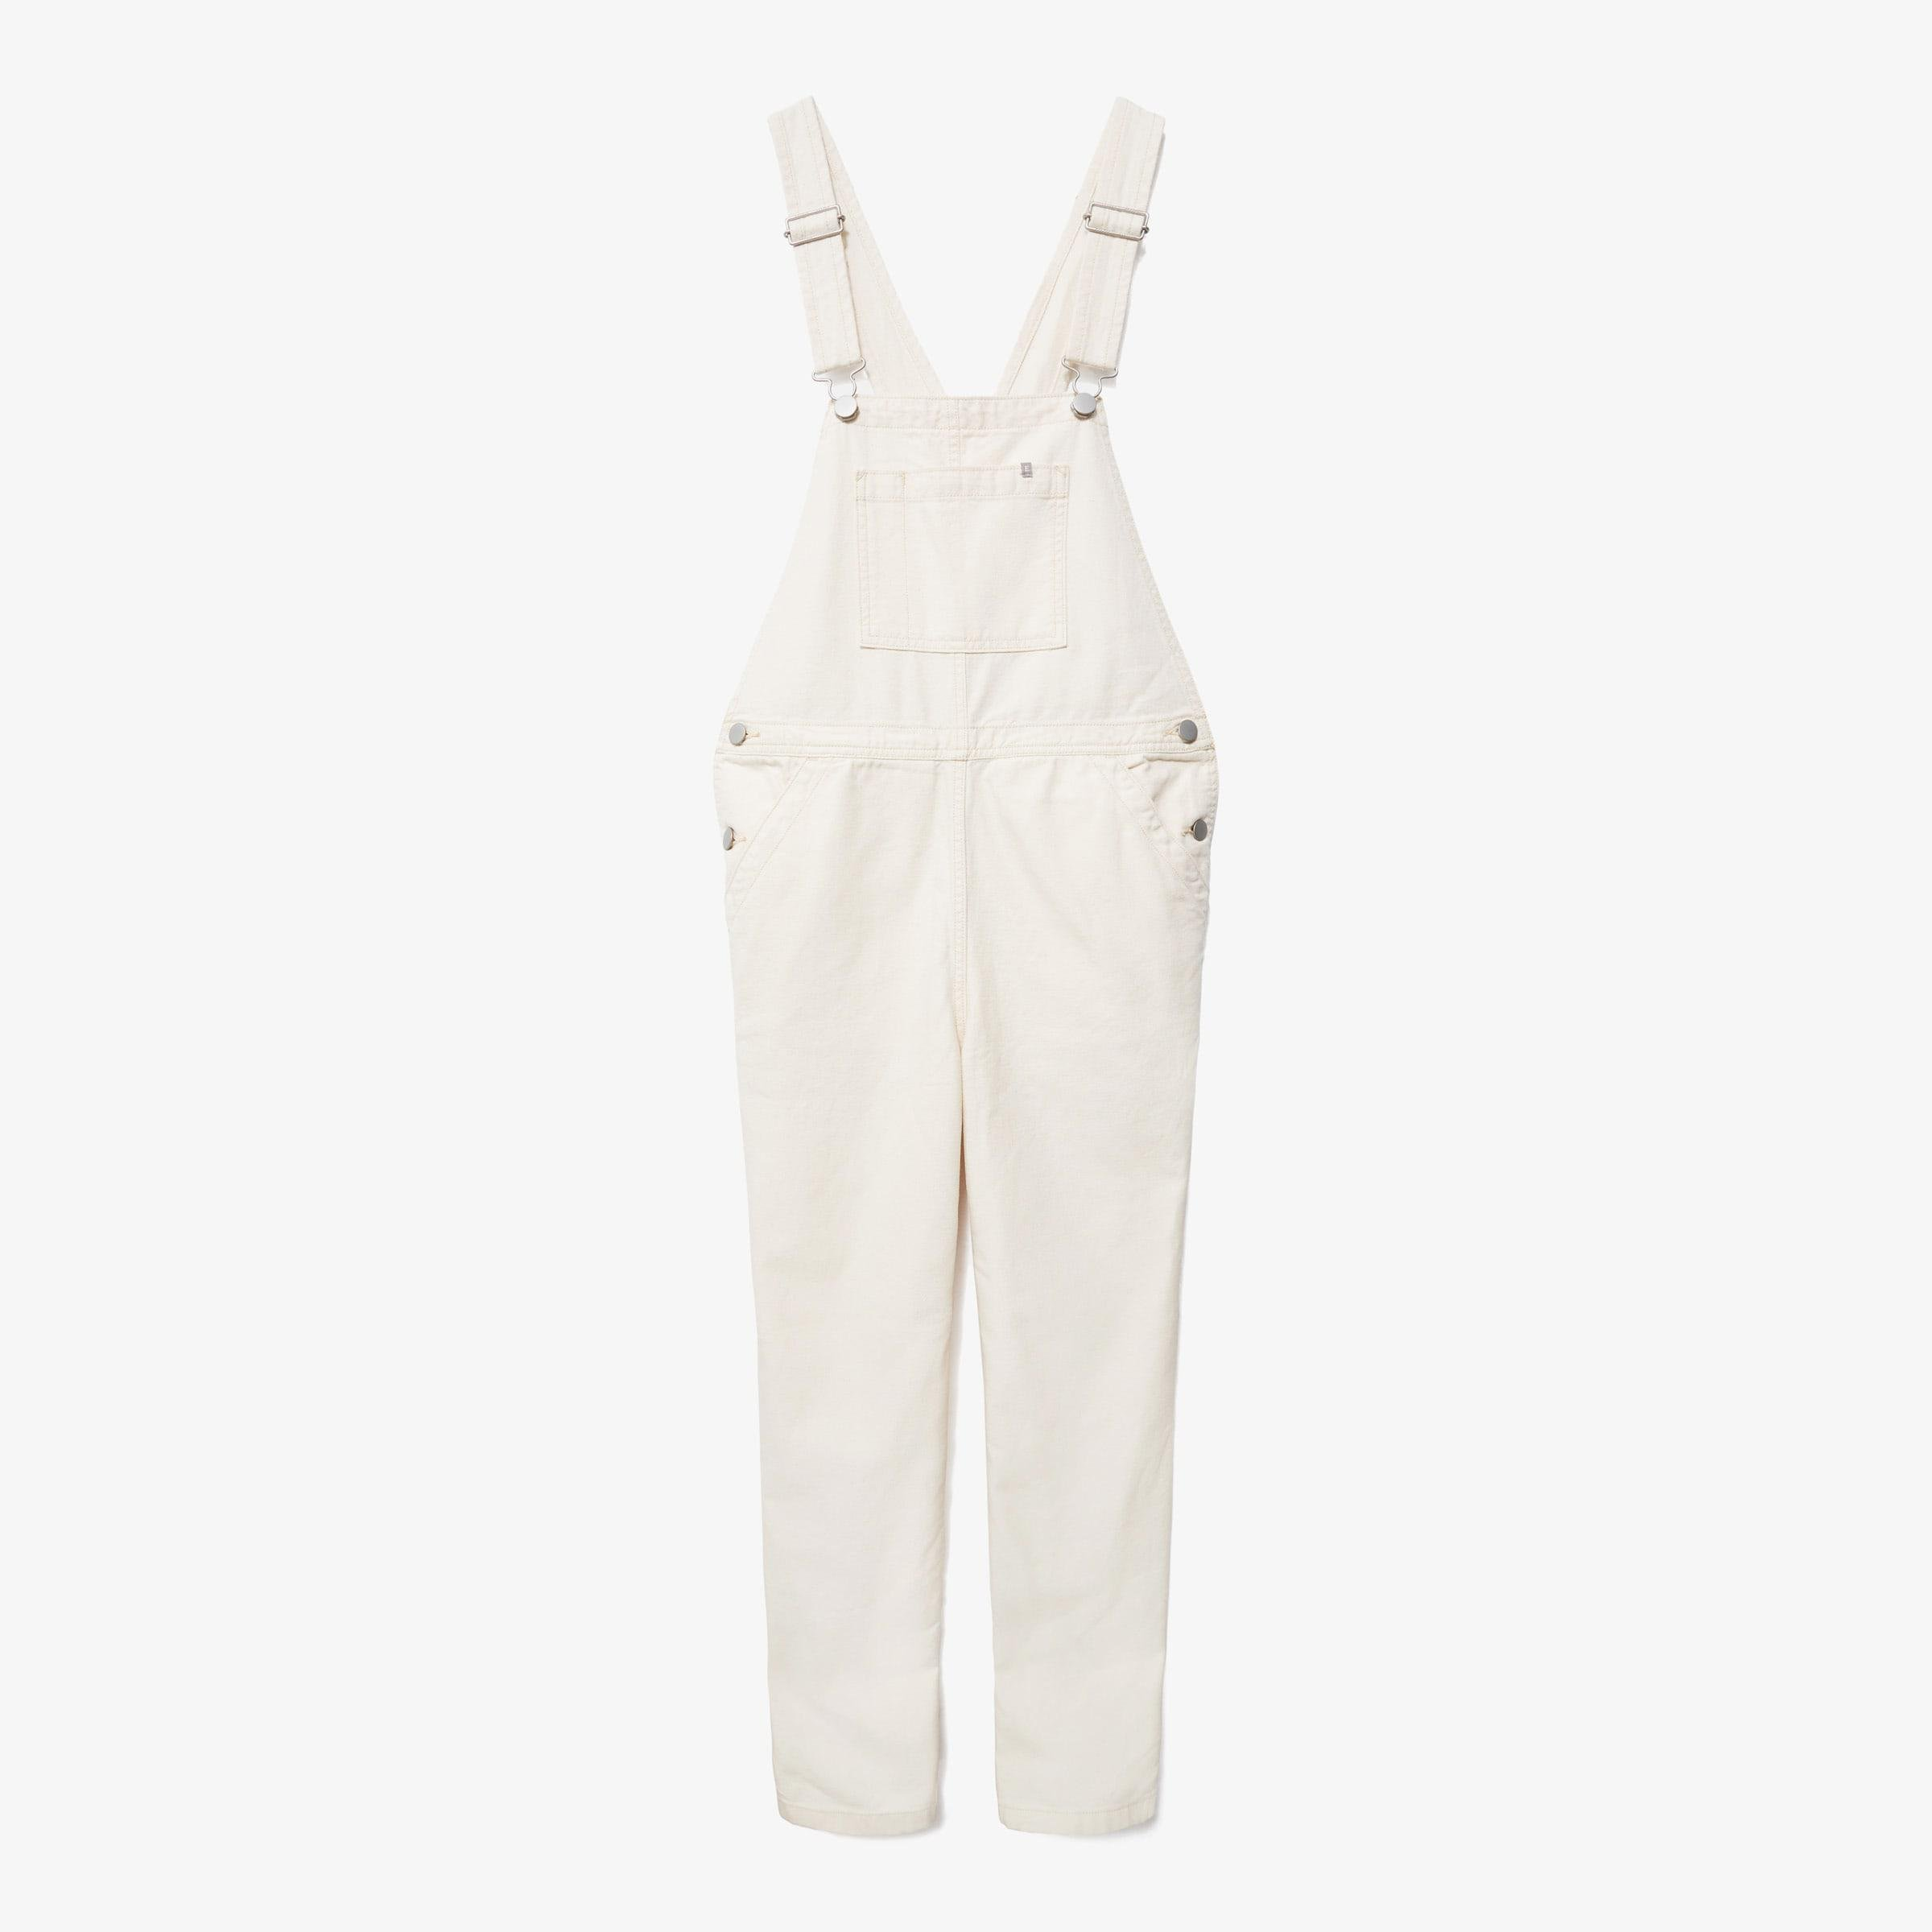 The Canvas Overalls 4